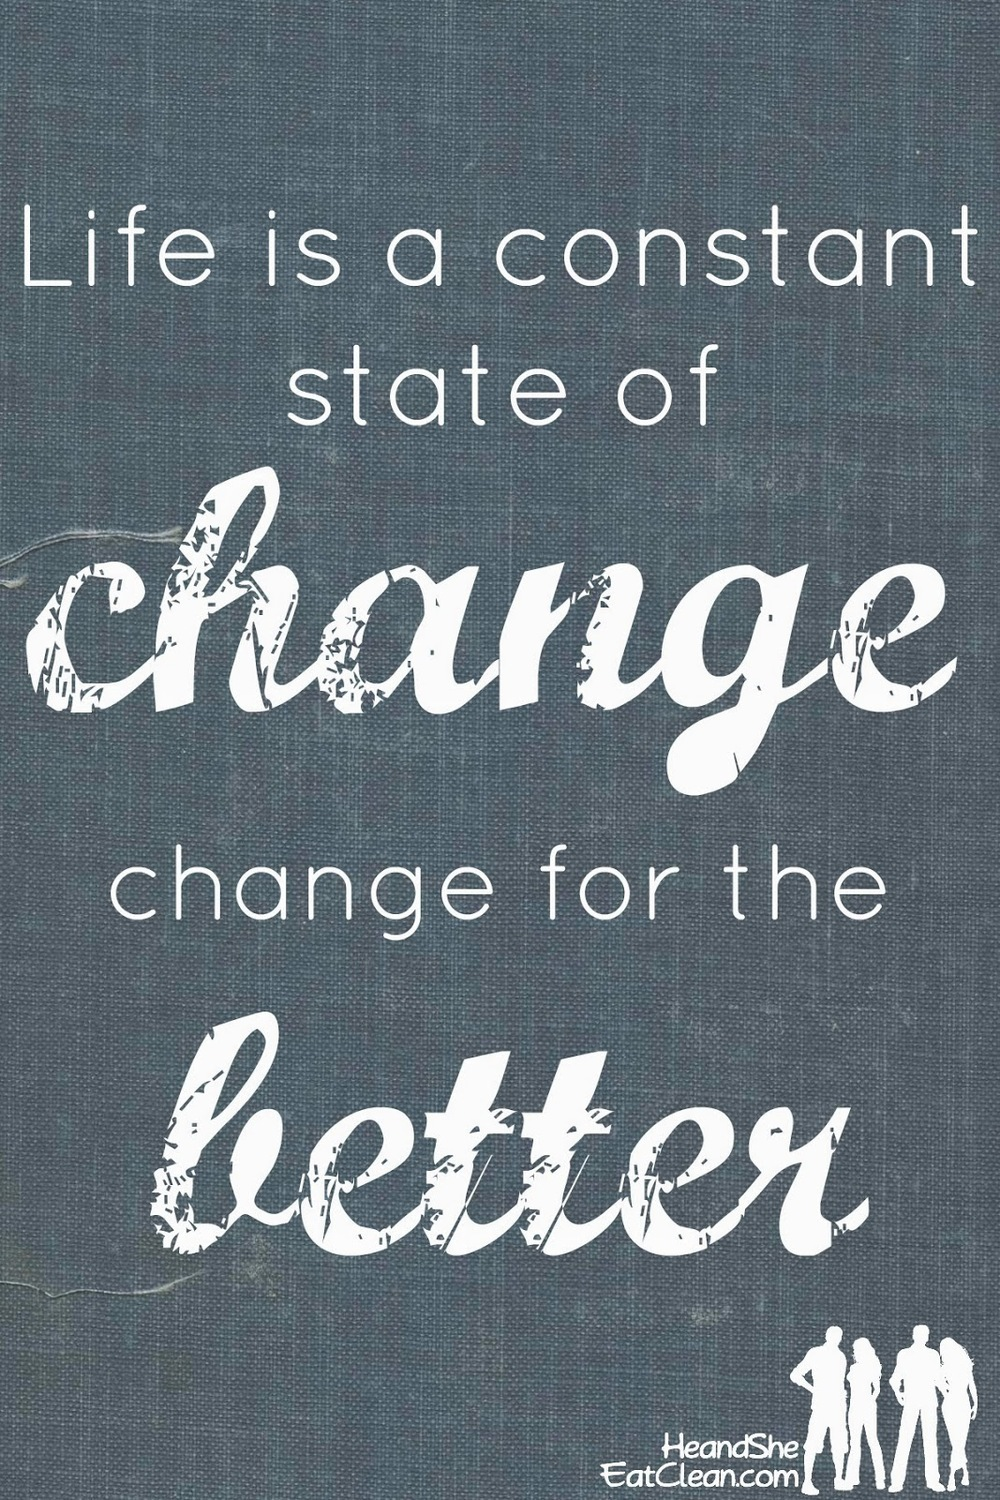 life-is-a-constant-state-of-change-evolution-for-the-better-improve-he-she-eat-clean.jpg